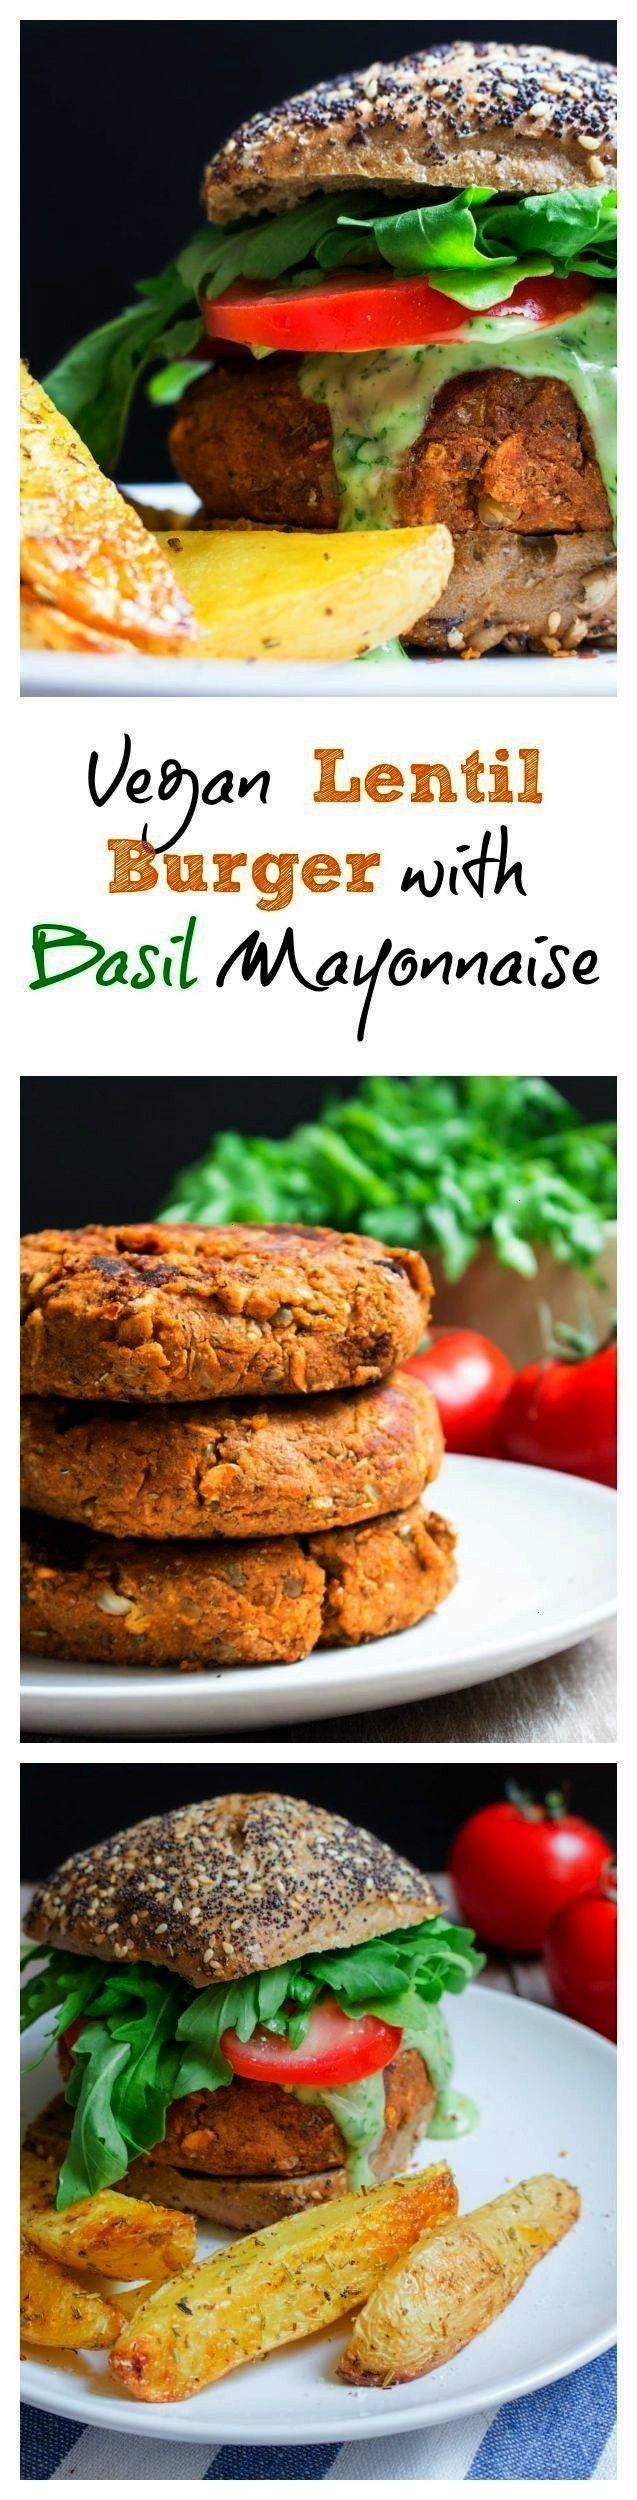 with basil mayonnaise, arugula, and tomatoes is not only super yummy but also healthy. Fast food at